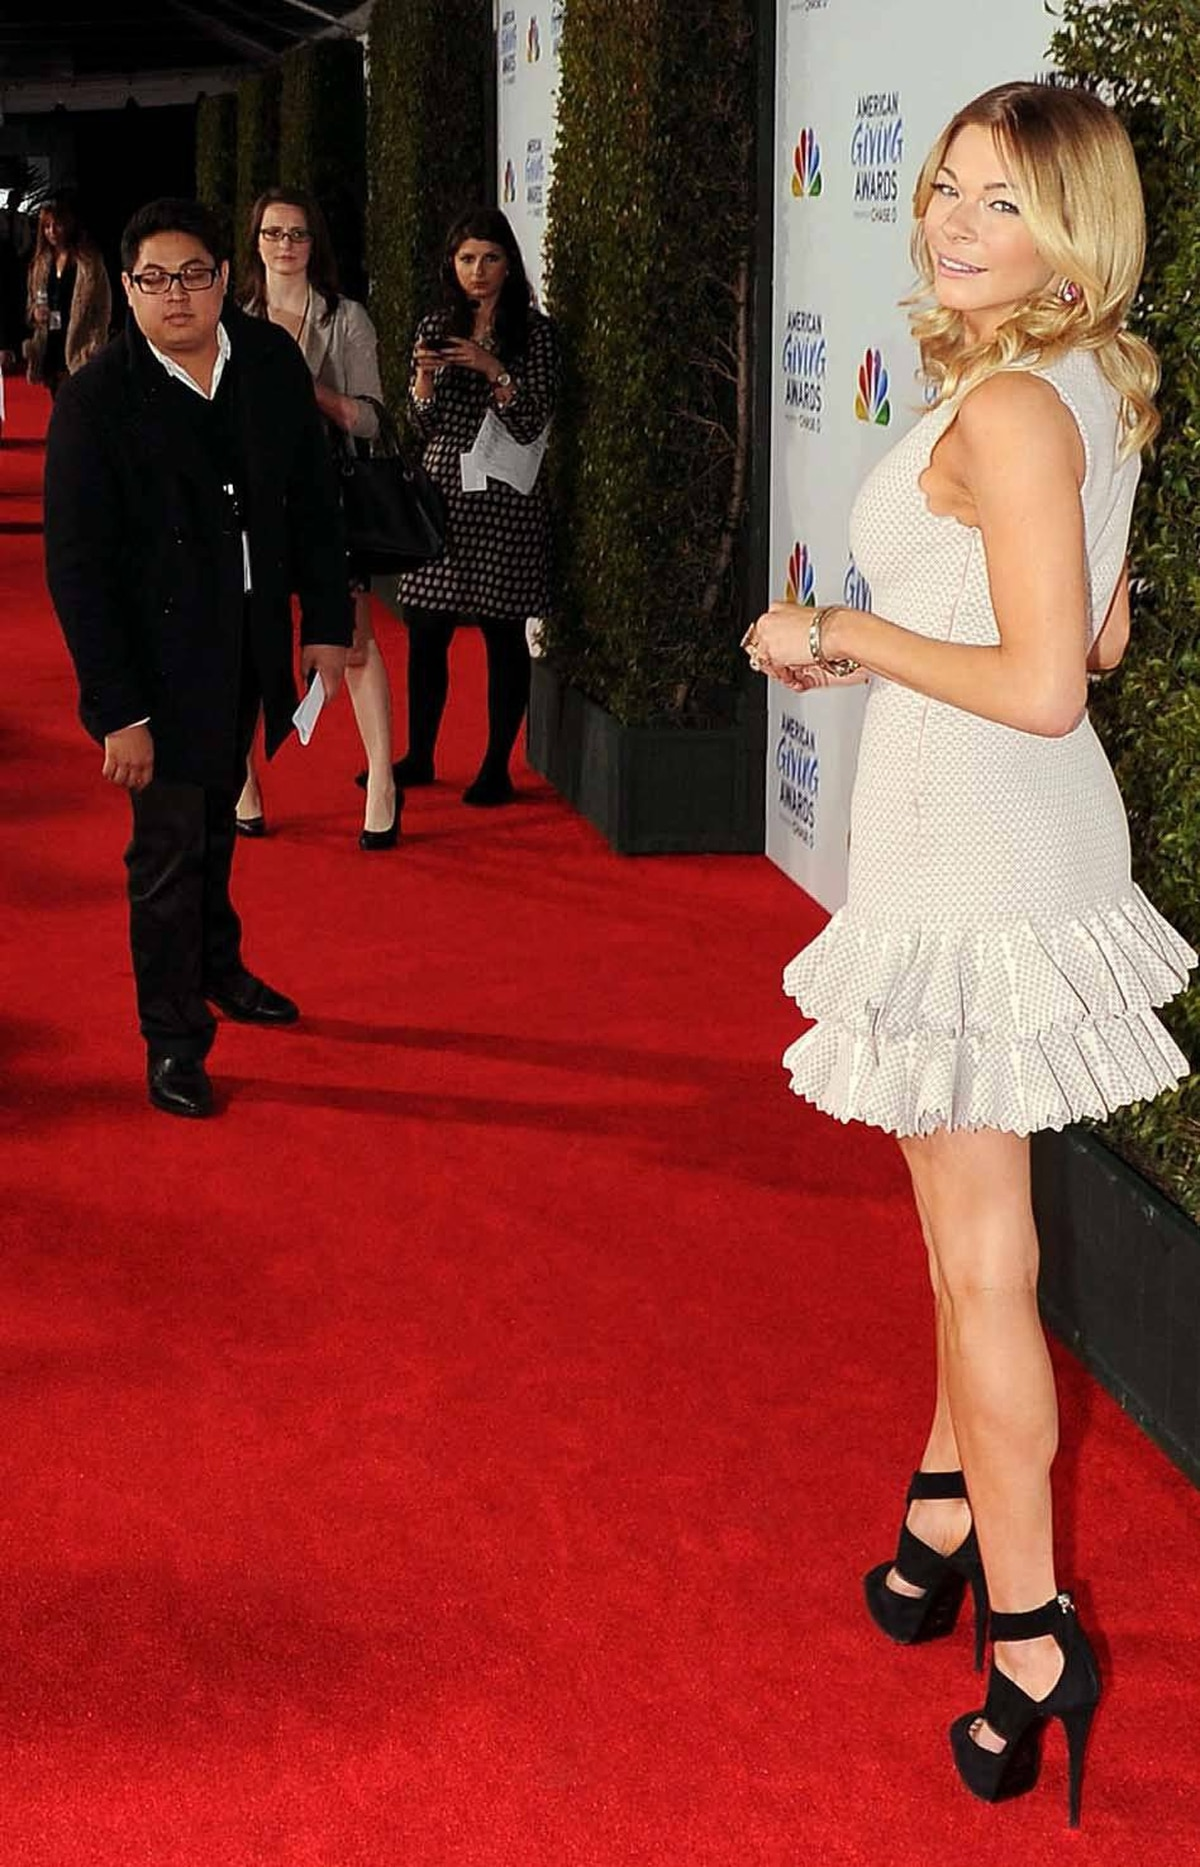 Singer LeAnn Rimes, arriving at the American Giving Awards in Los Angeles on Sunday, ignores the narcoleptic handler trapped on the red carpet.